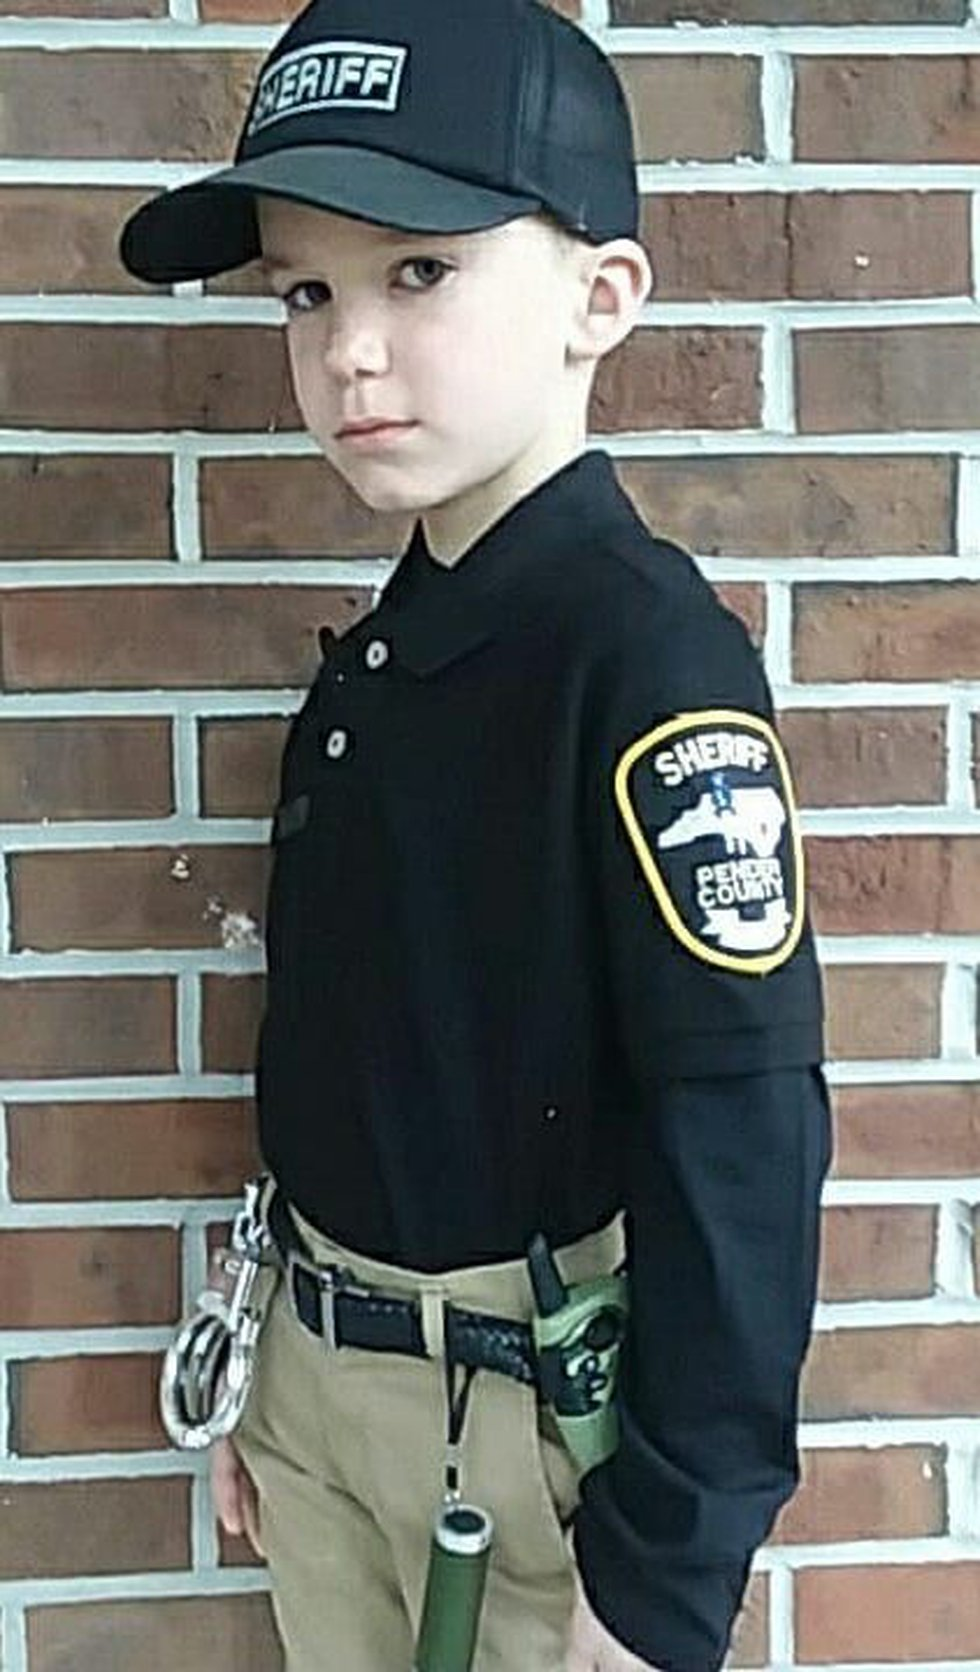 Daniel was excited to dress up as a Pender County Sheriff's Deputy for career day at his school...